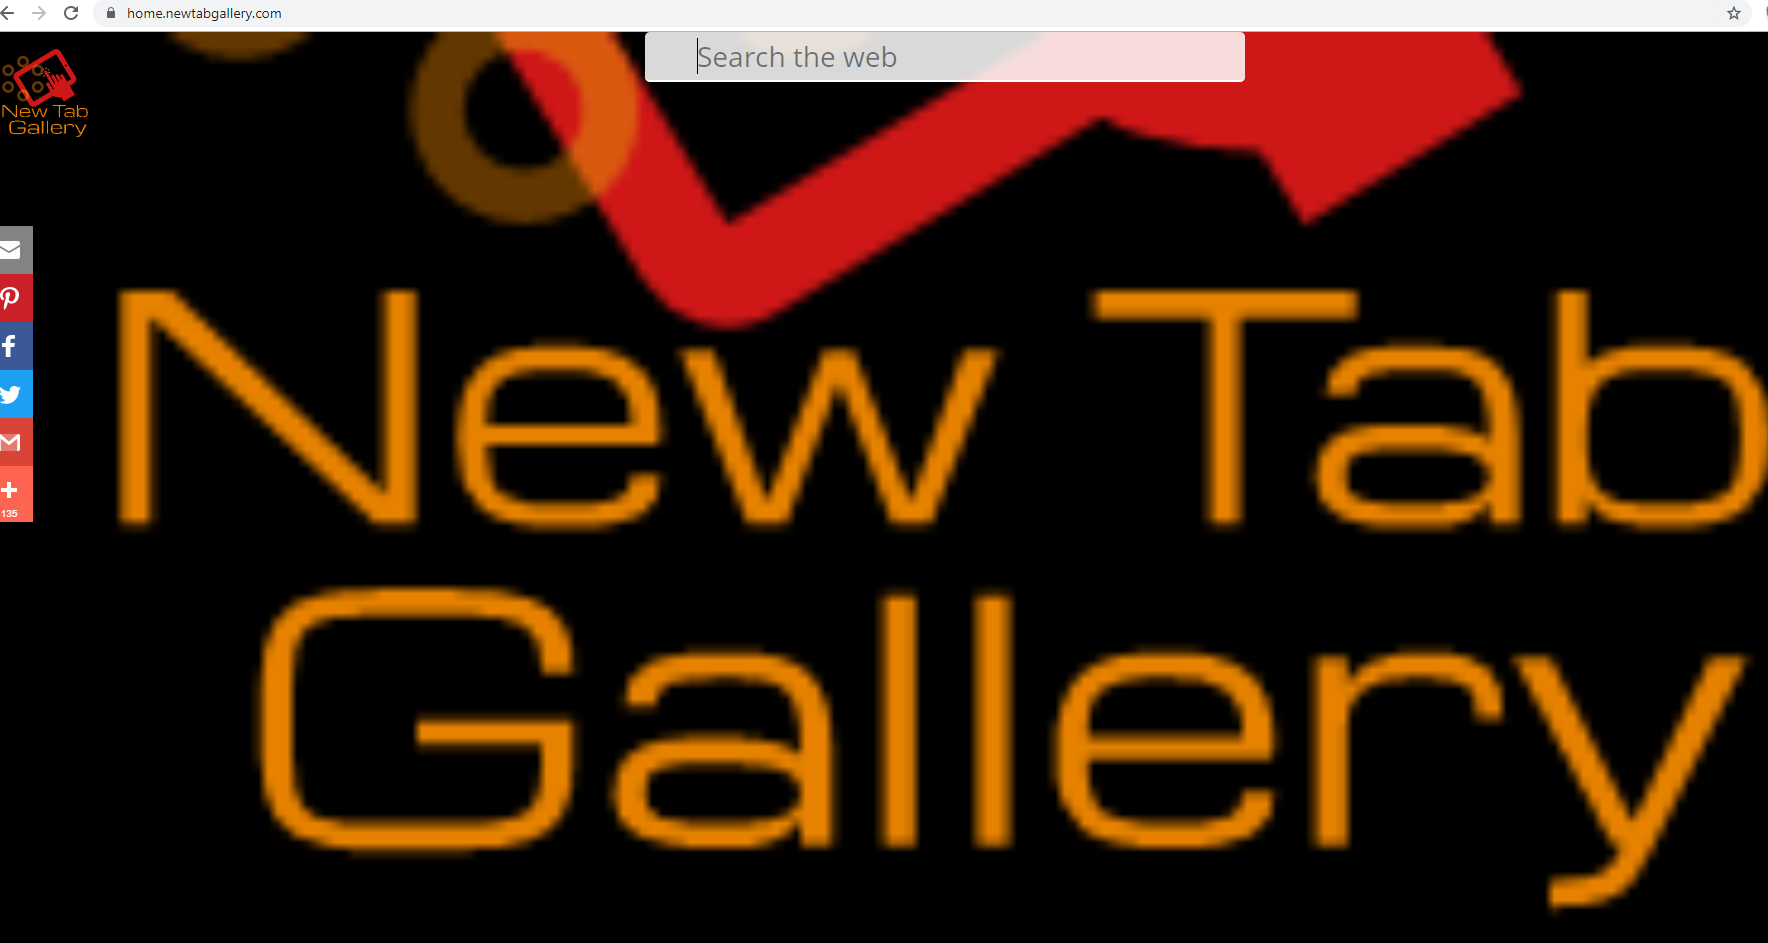 Remove home.newtabgallery.com from Chrome, Firefox and Microsoft Edge